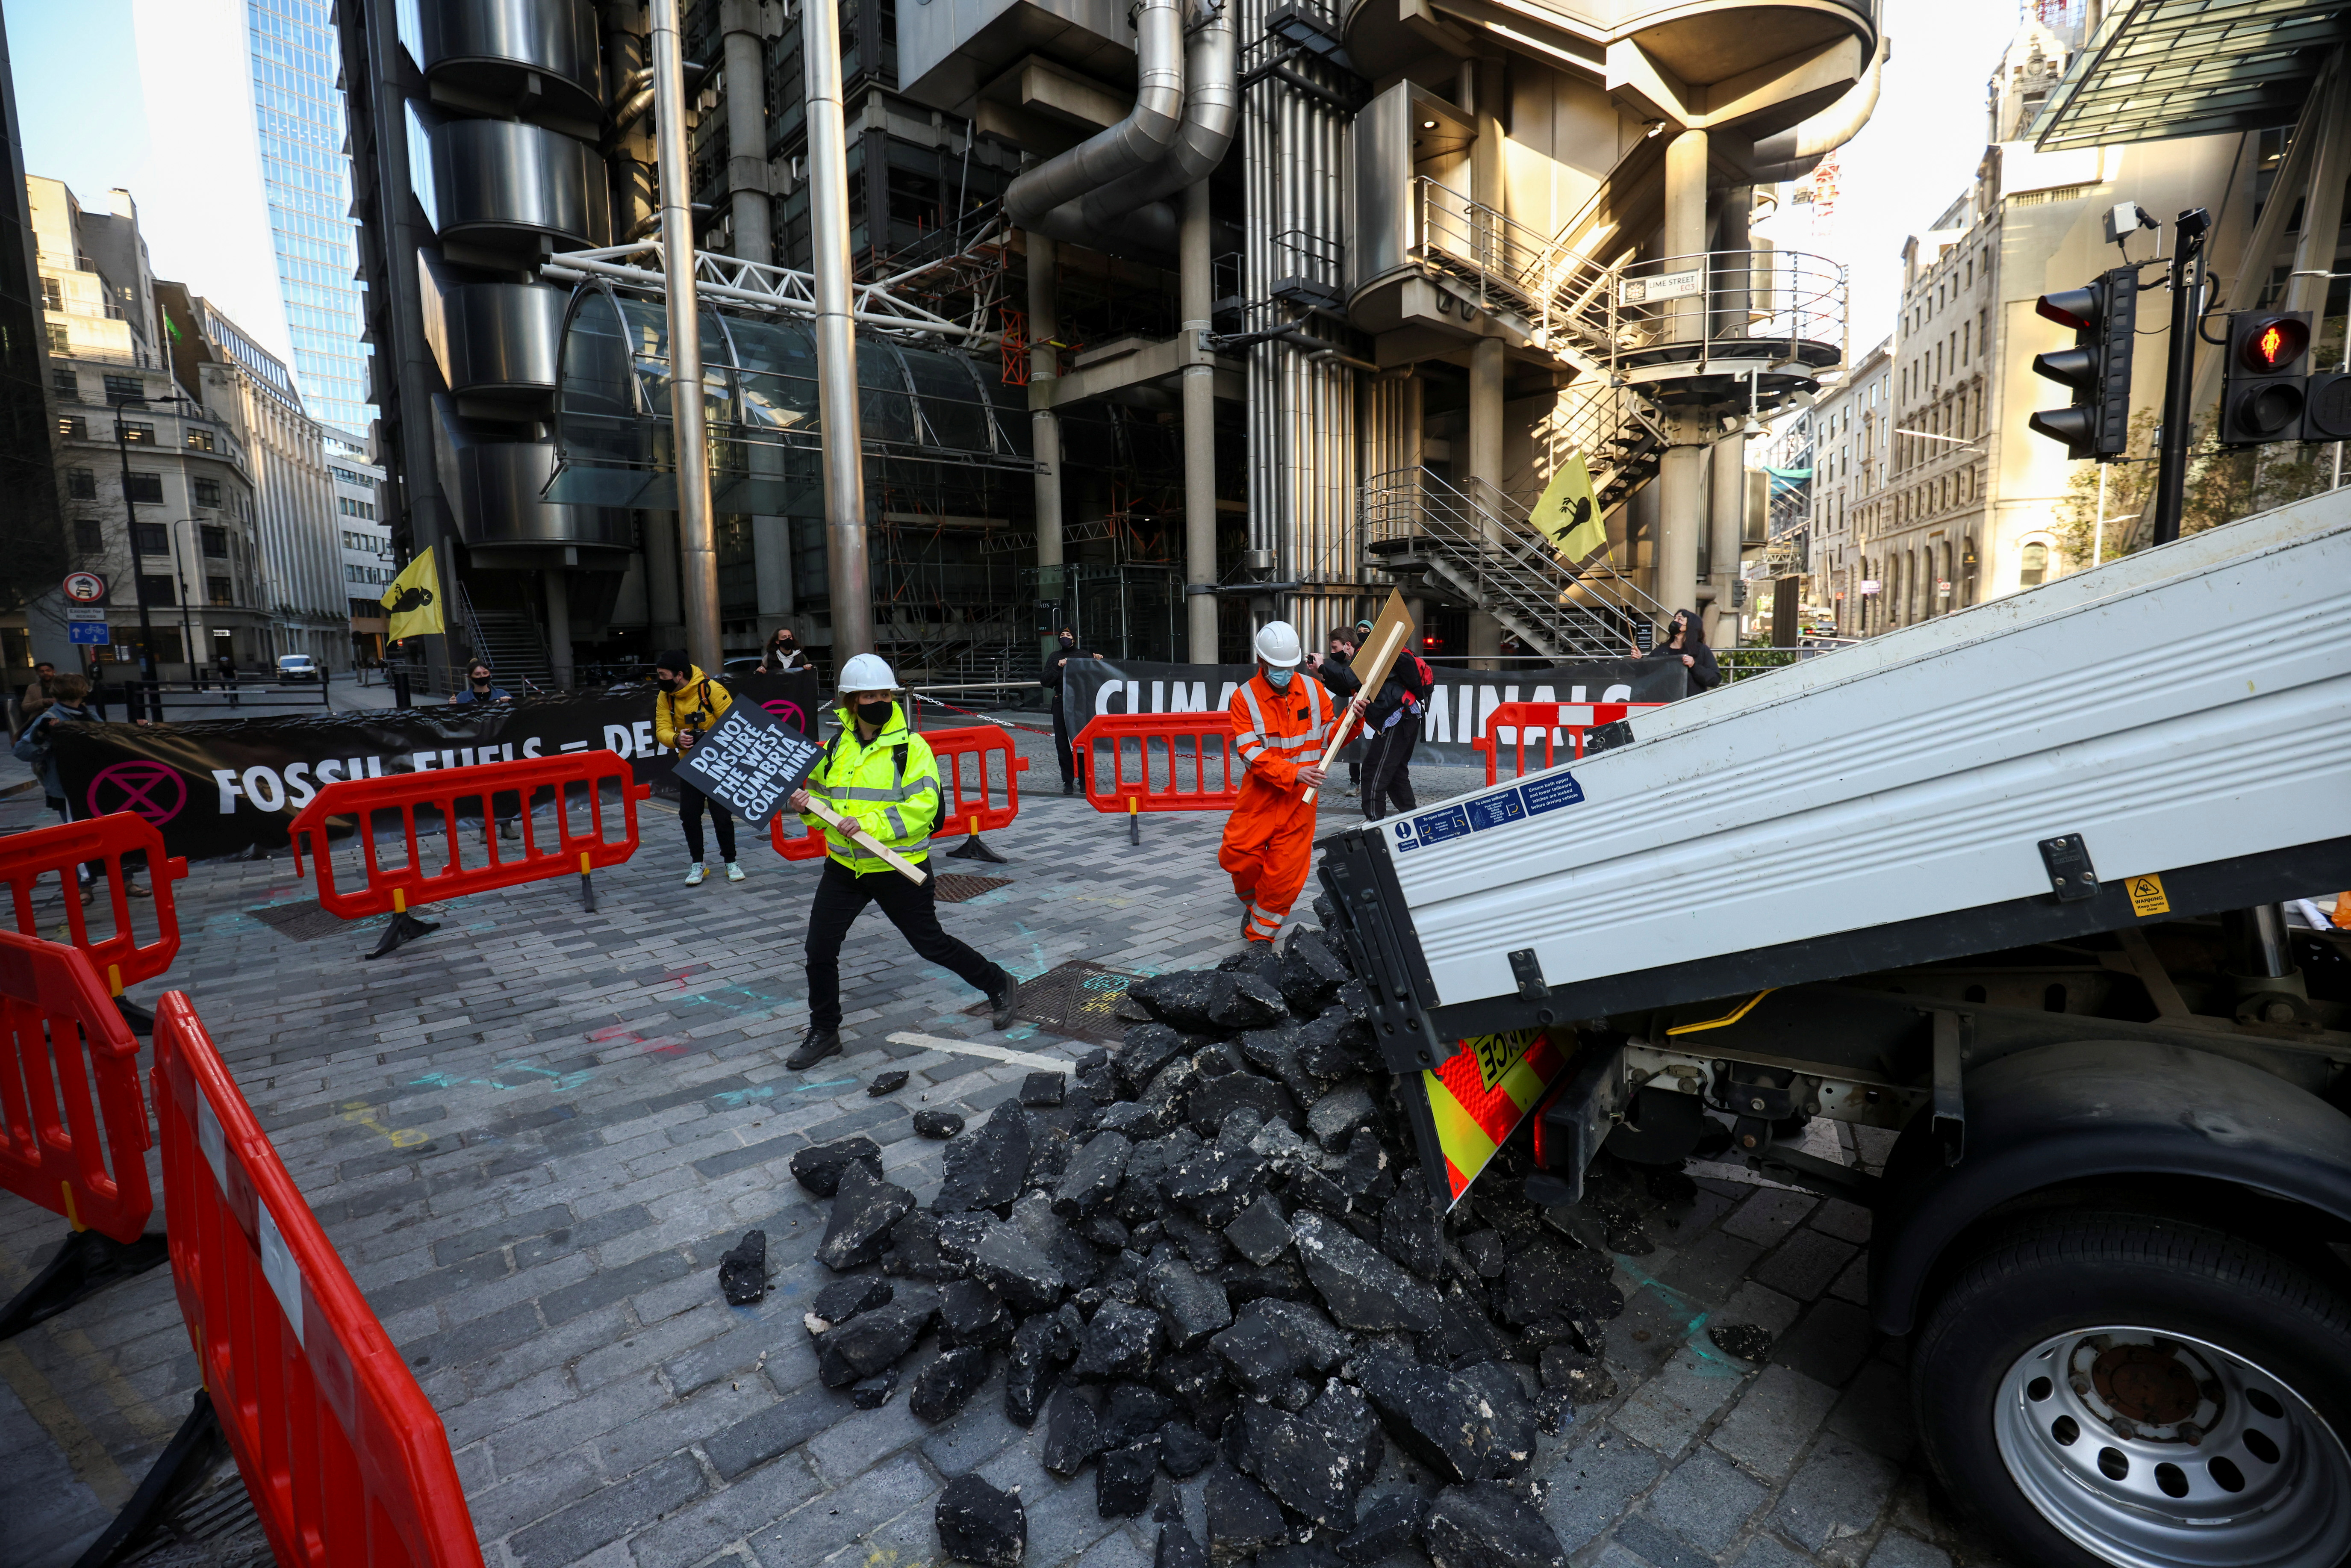 Activists from Extinction Rebellion, a global environmental movement, hold placards as they unload fake coal, made from rocks, from a truck onto the street, during a protest outside the Lloyd's building in London, Britain April 23, 2021. REUTERS/Henry Nicholls